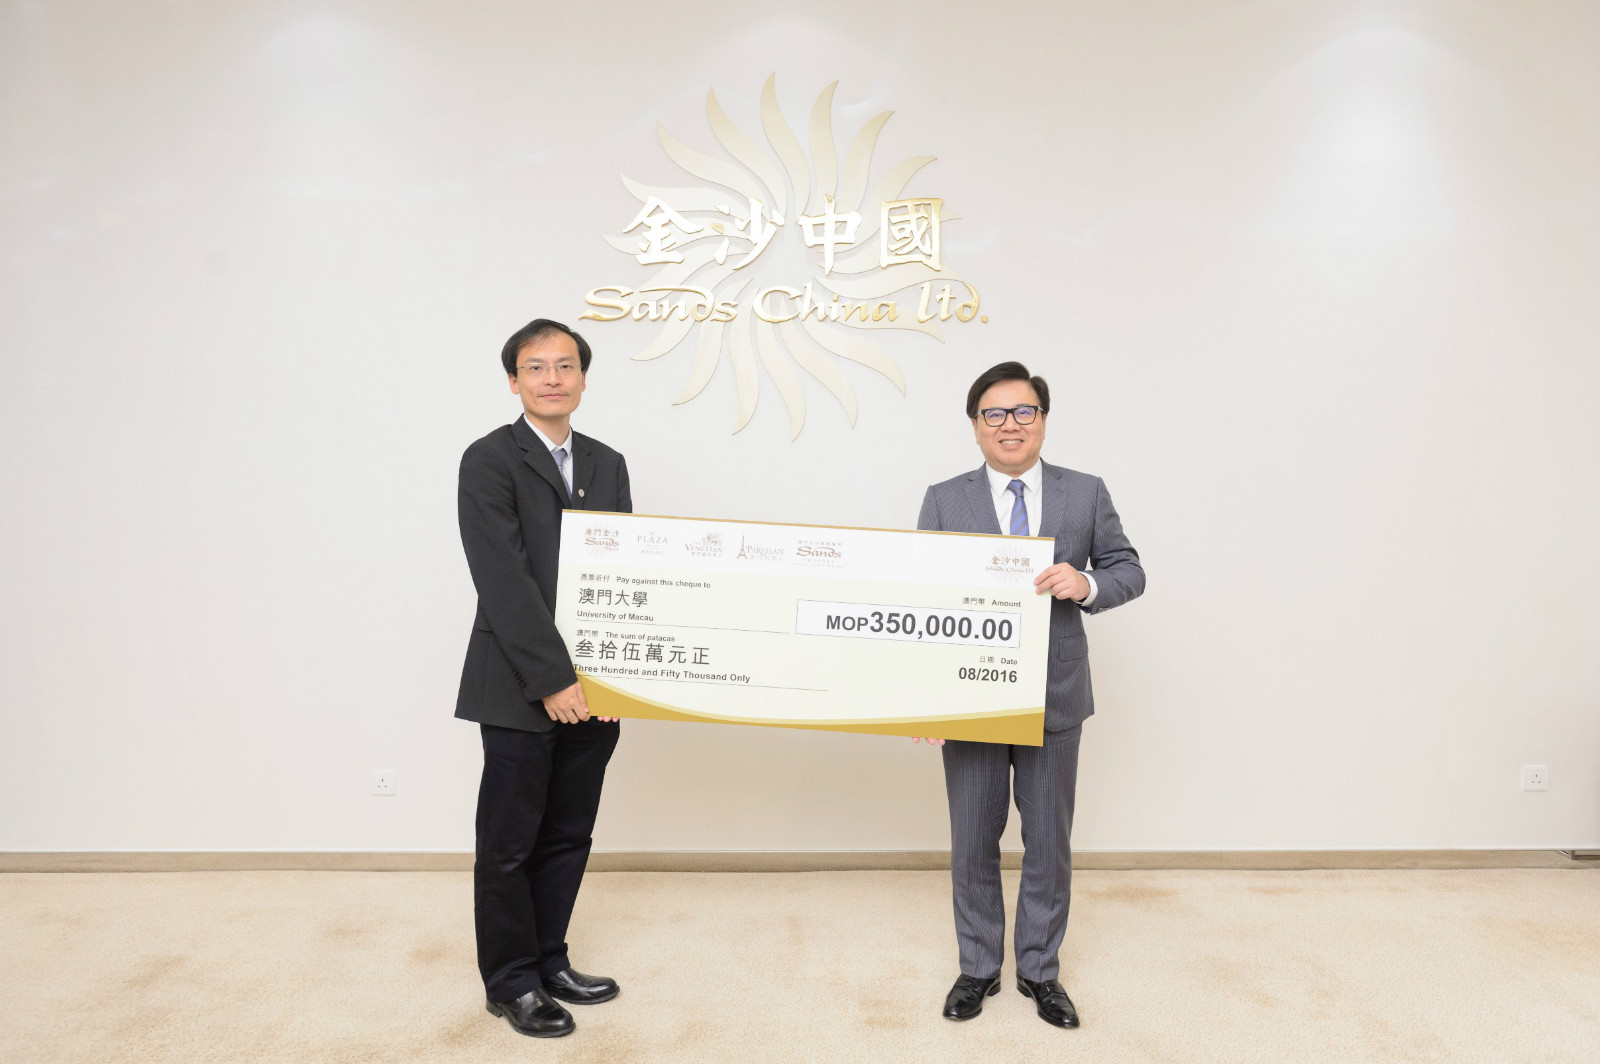 Sands China Donates MOP 970,000 to Scholarship and Fellowship Funds